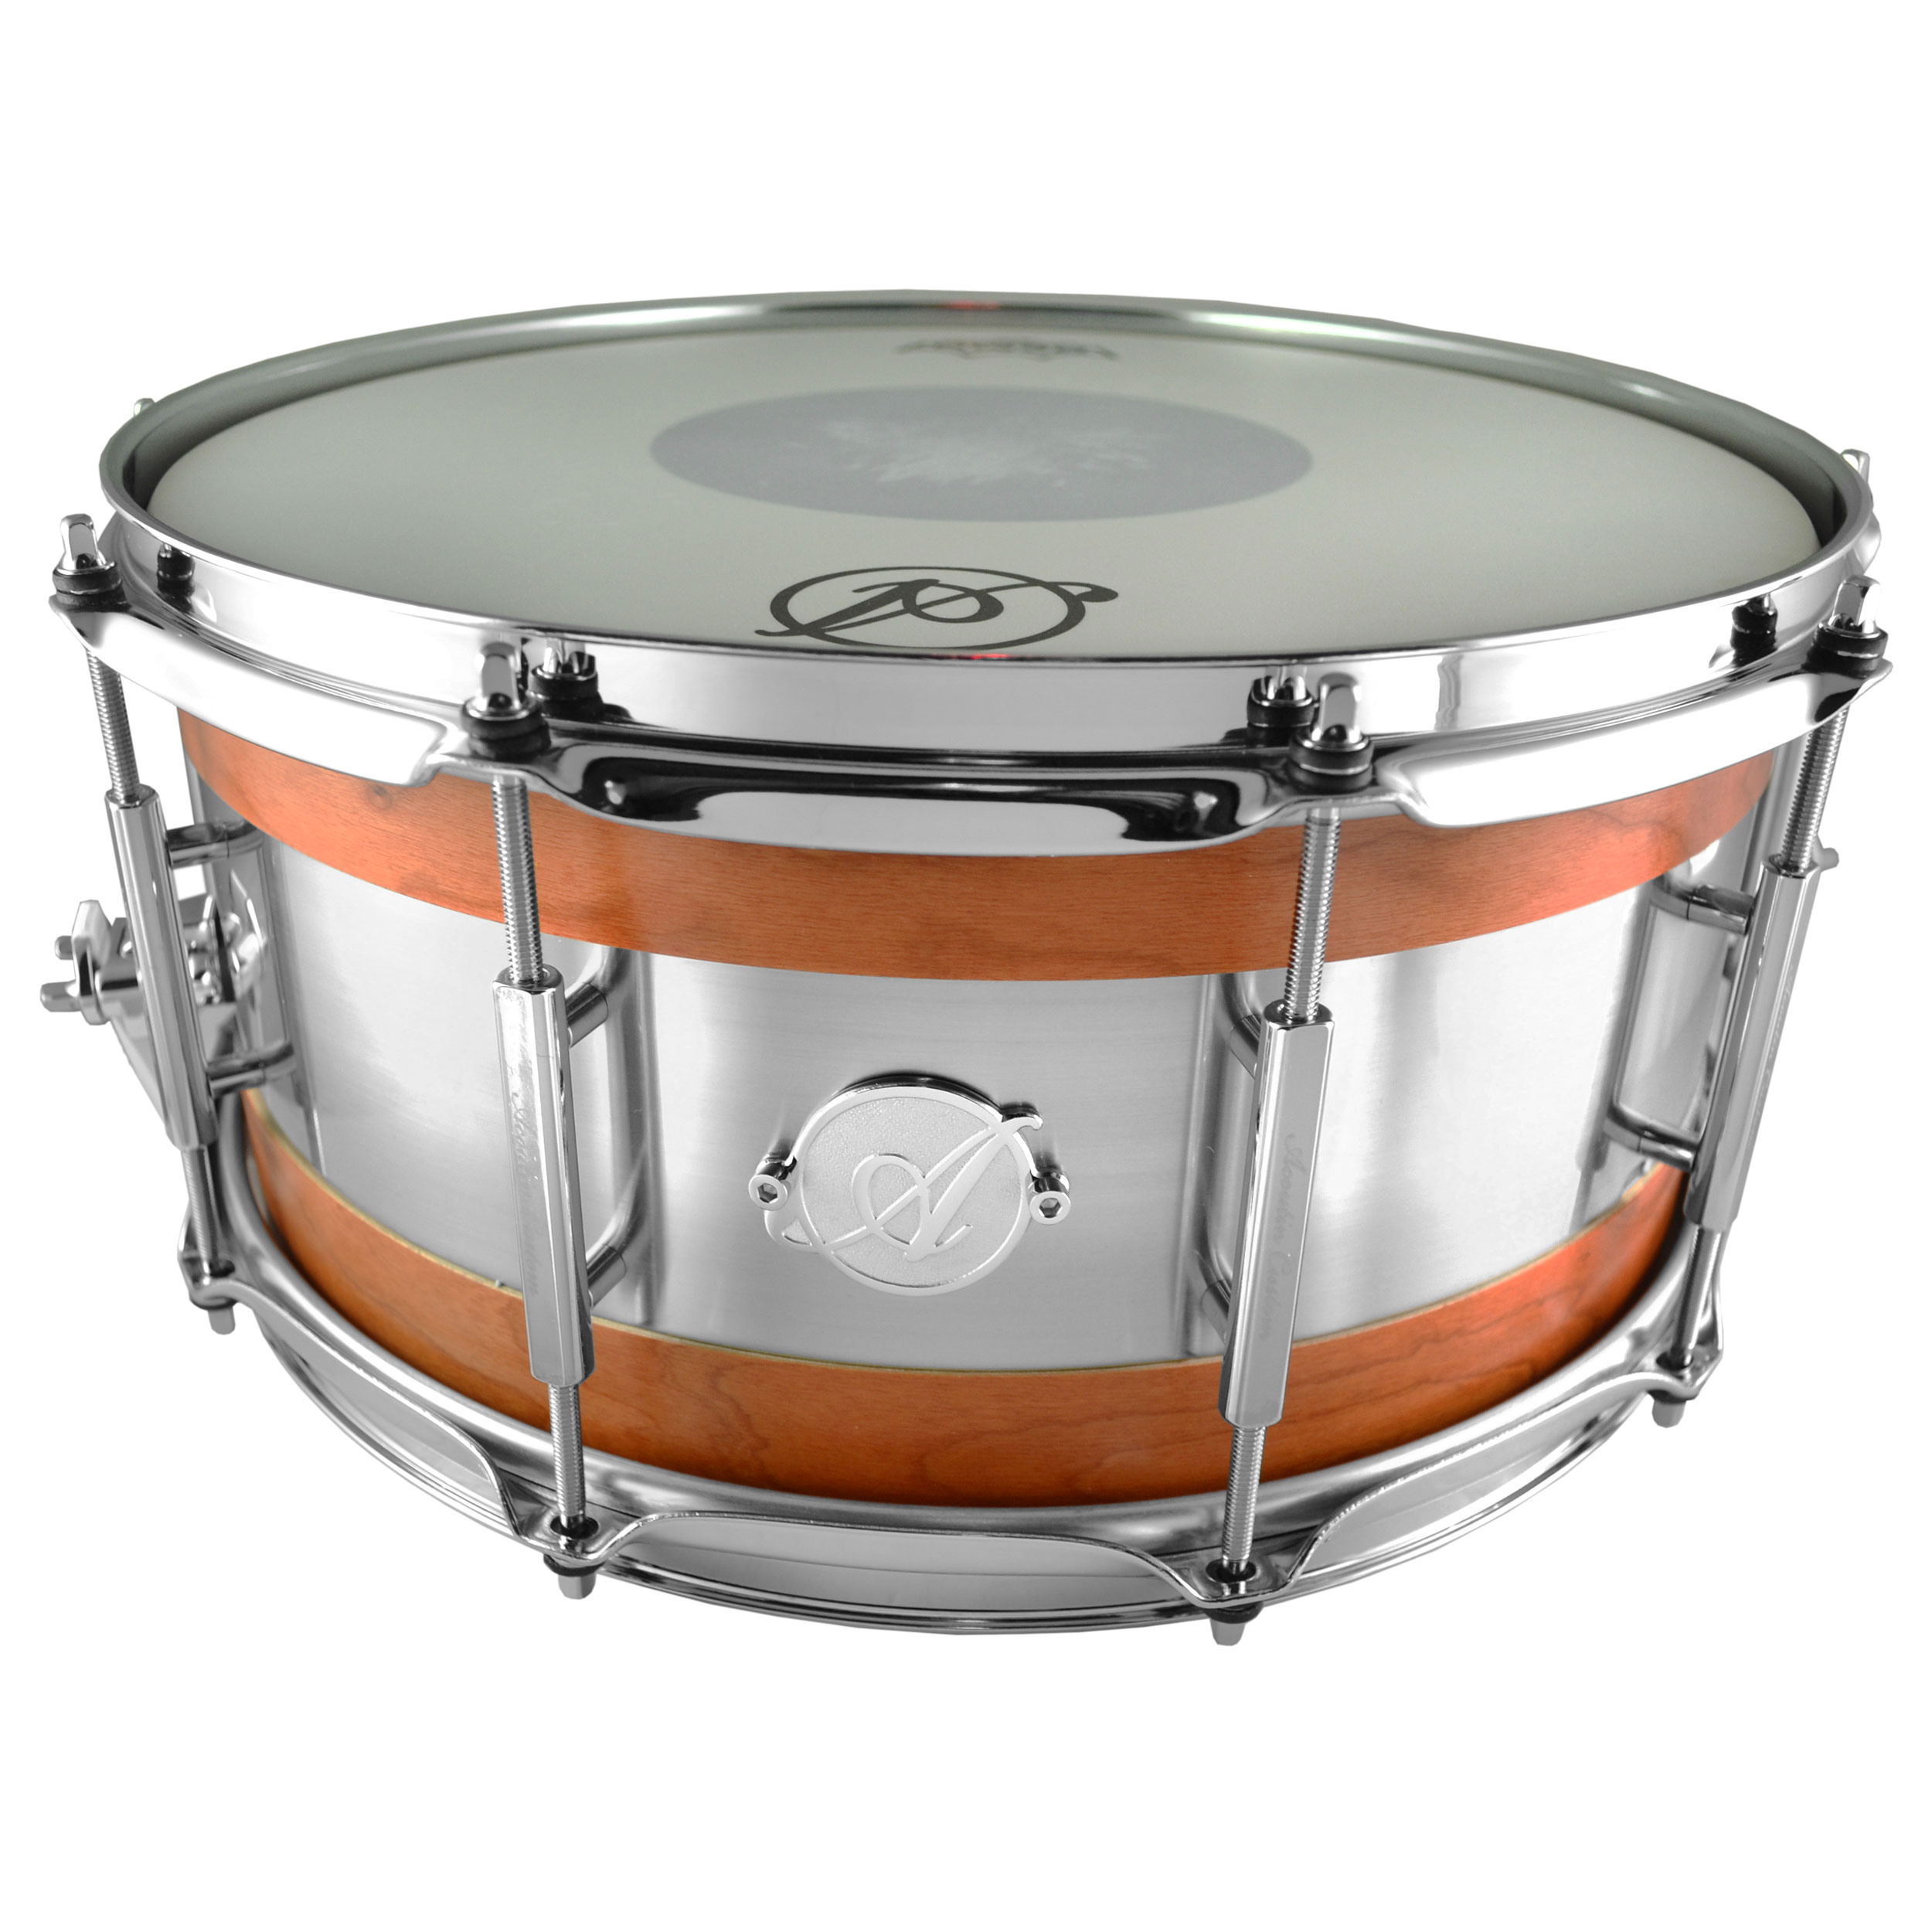 "Acoutin 6.5"" x 14"" Cherry & Brushed Stainless Steel Snare Drum in Matte Lacquer"